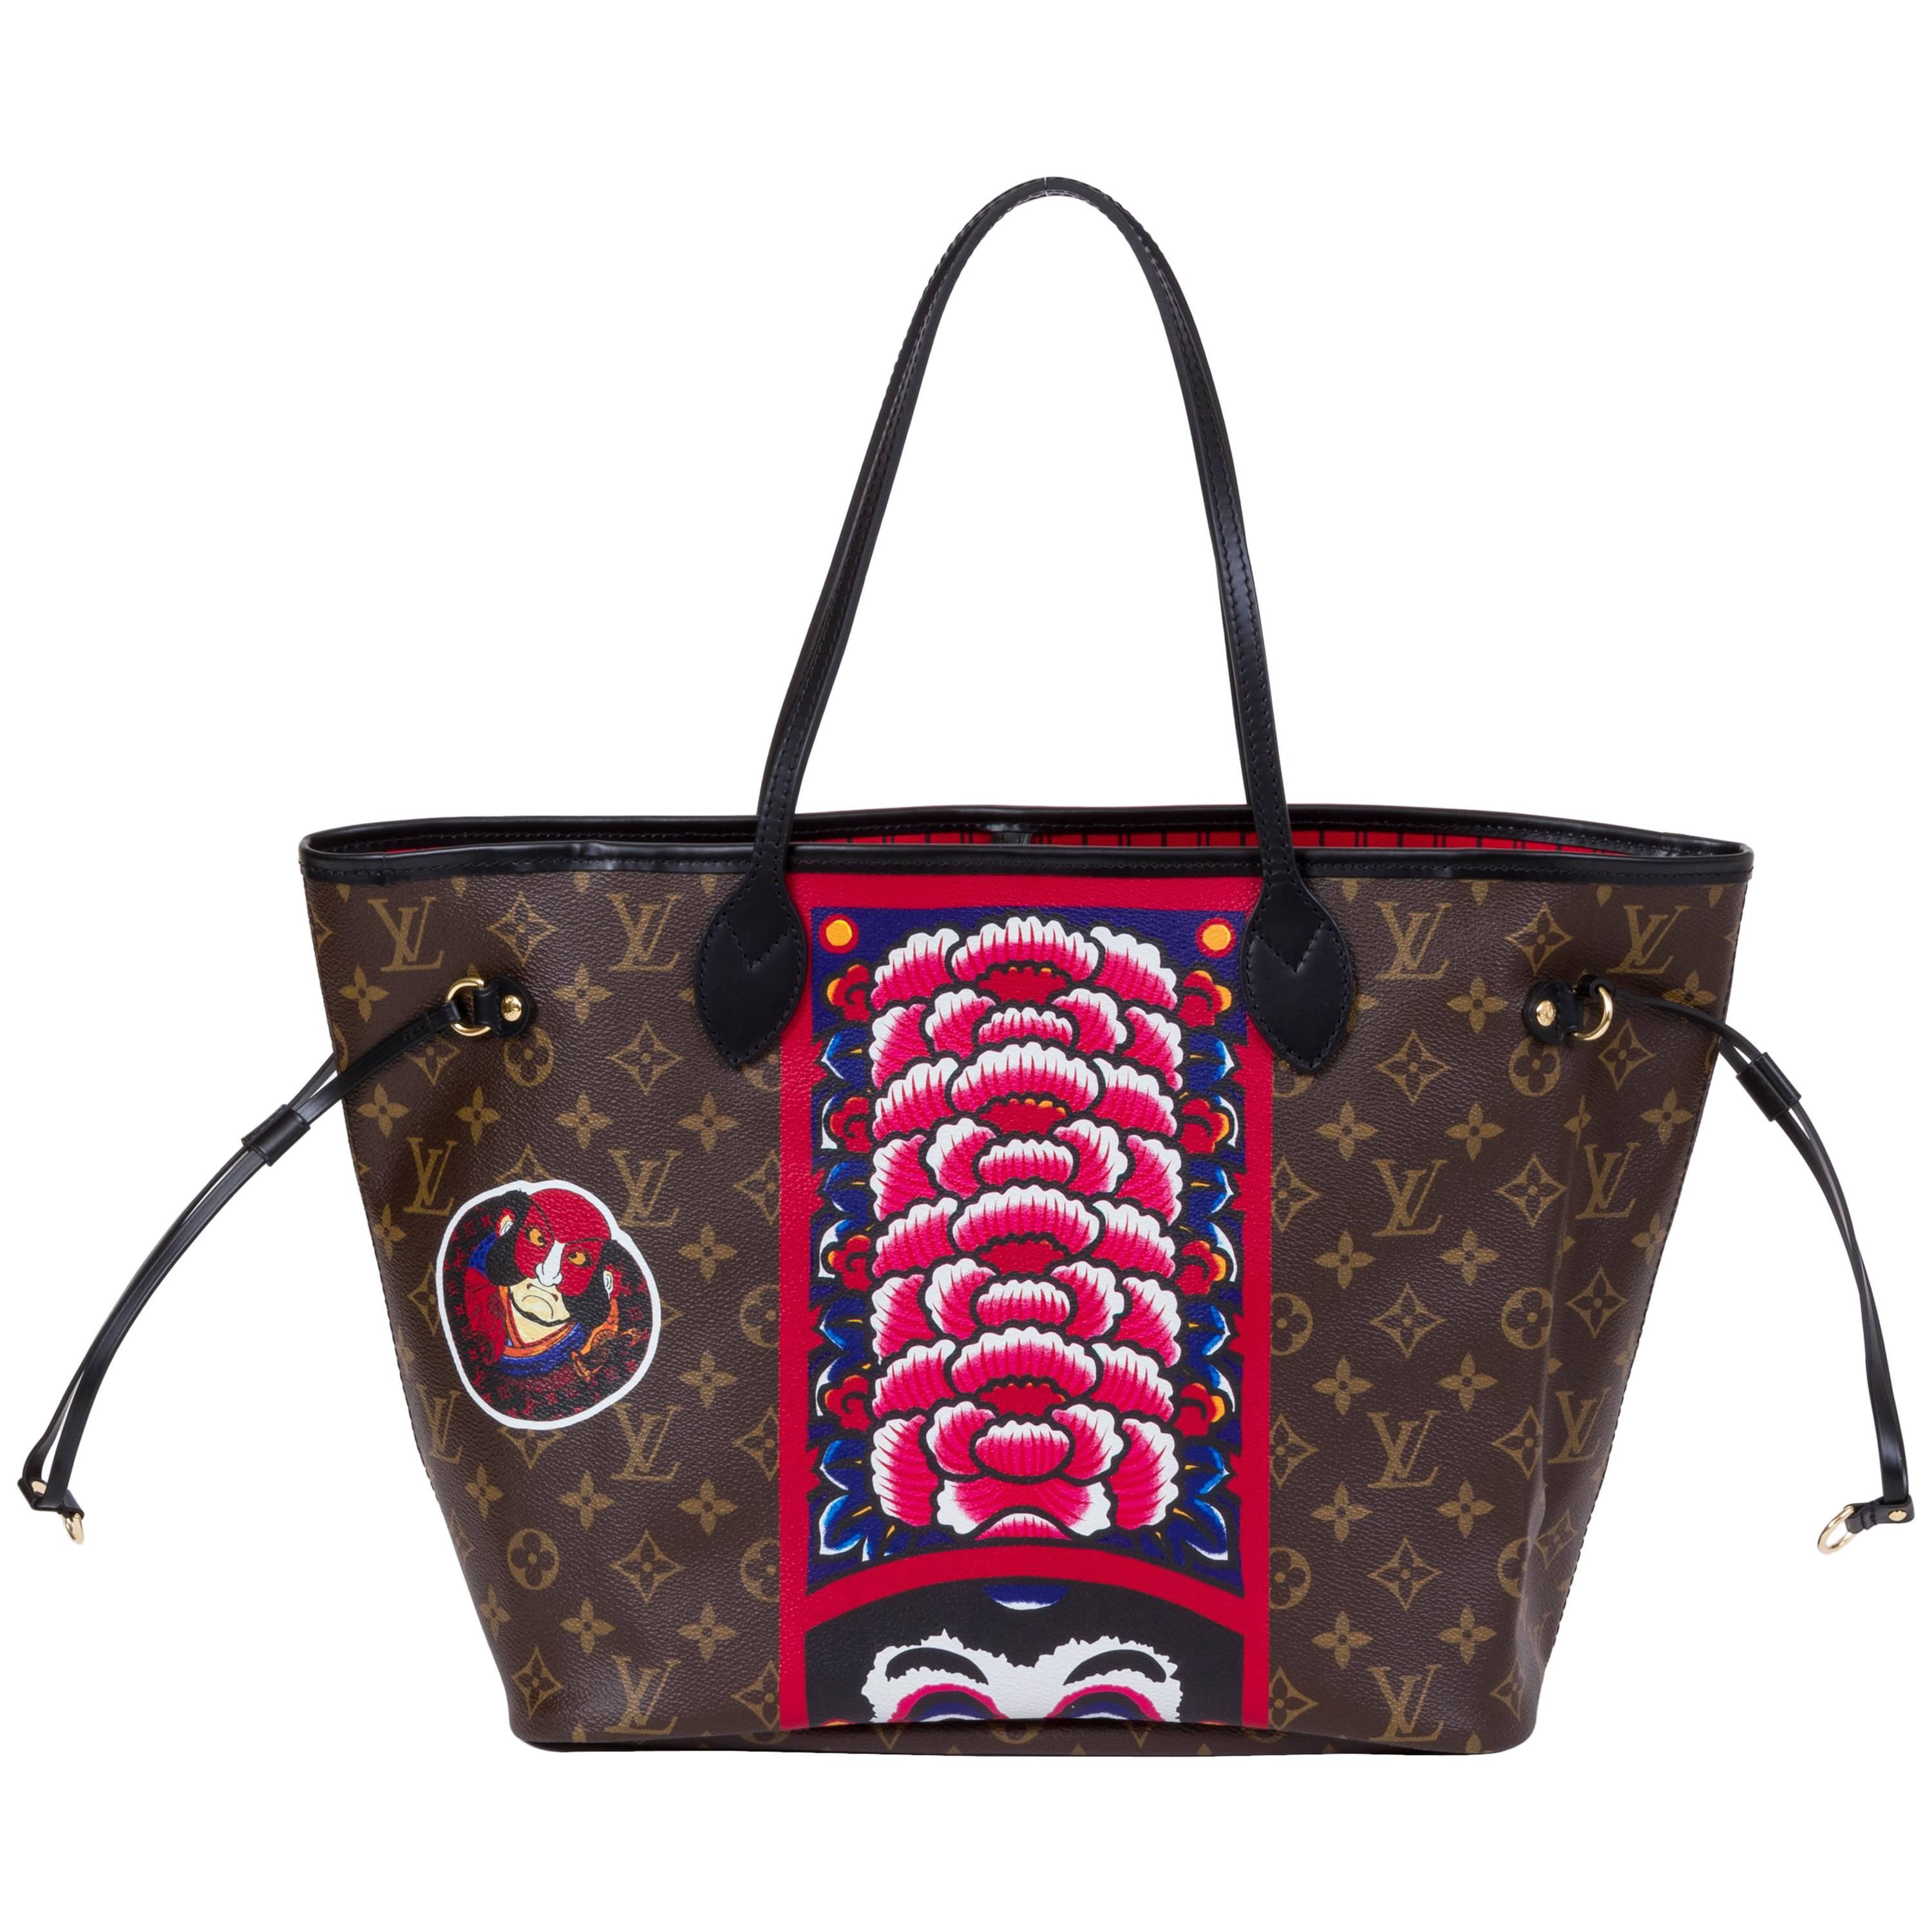 be614c32e9 New Vuitton Kabuki Limited Edition Neverfull Bag For Sale at 1stdibs